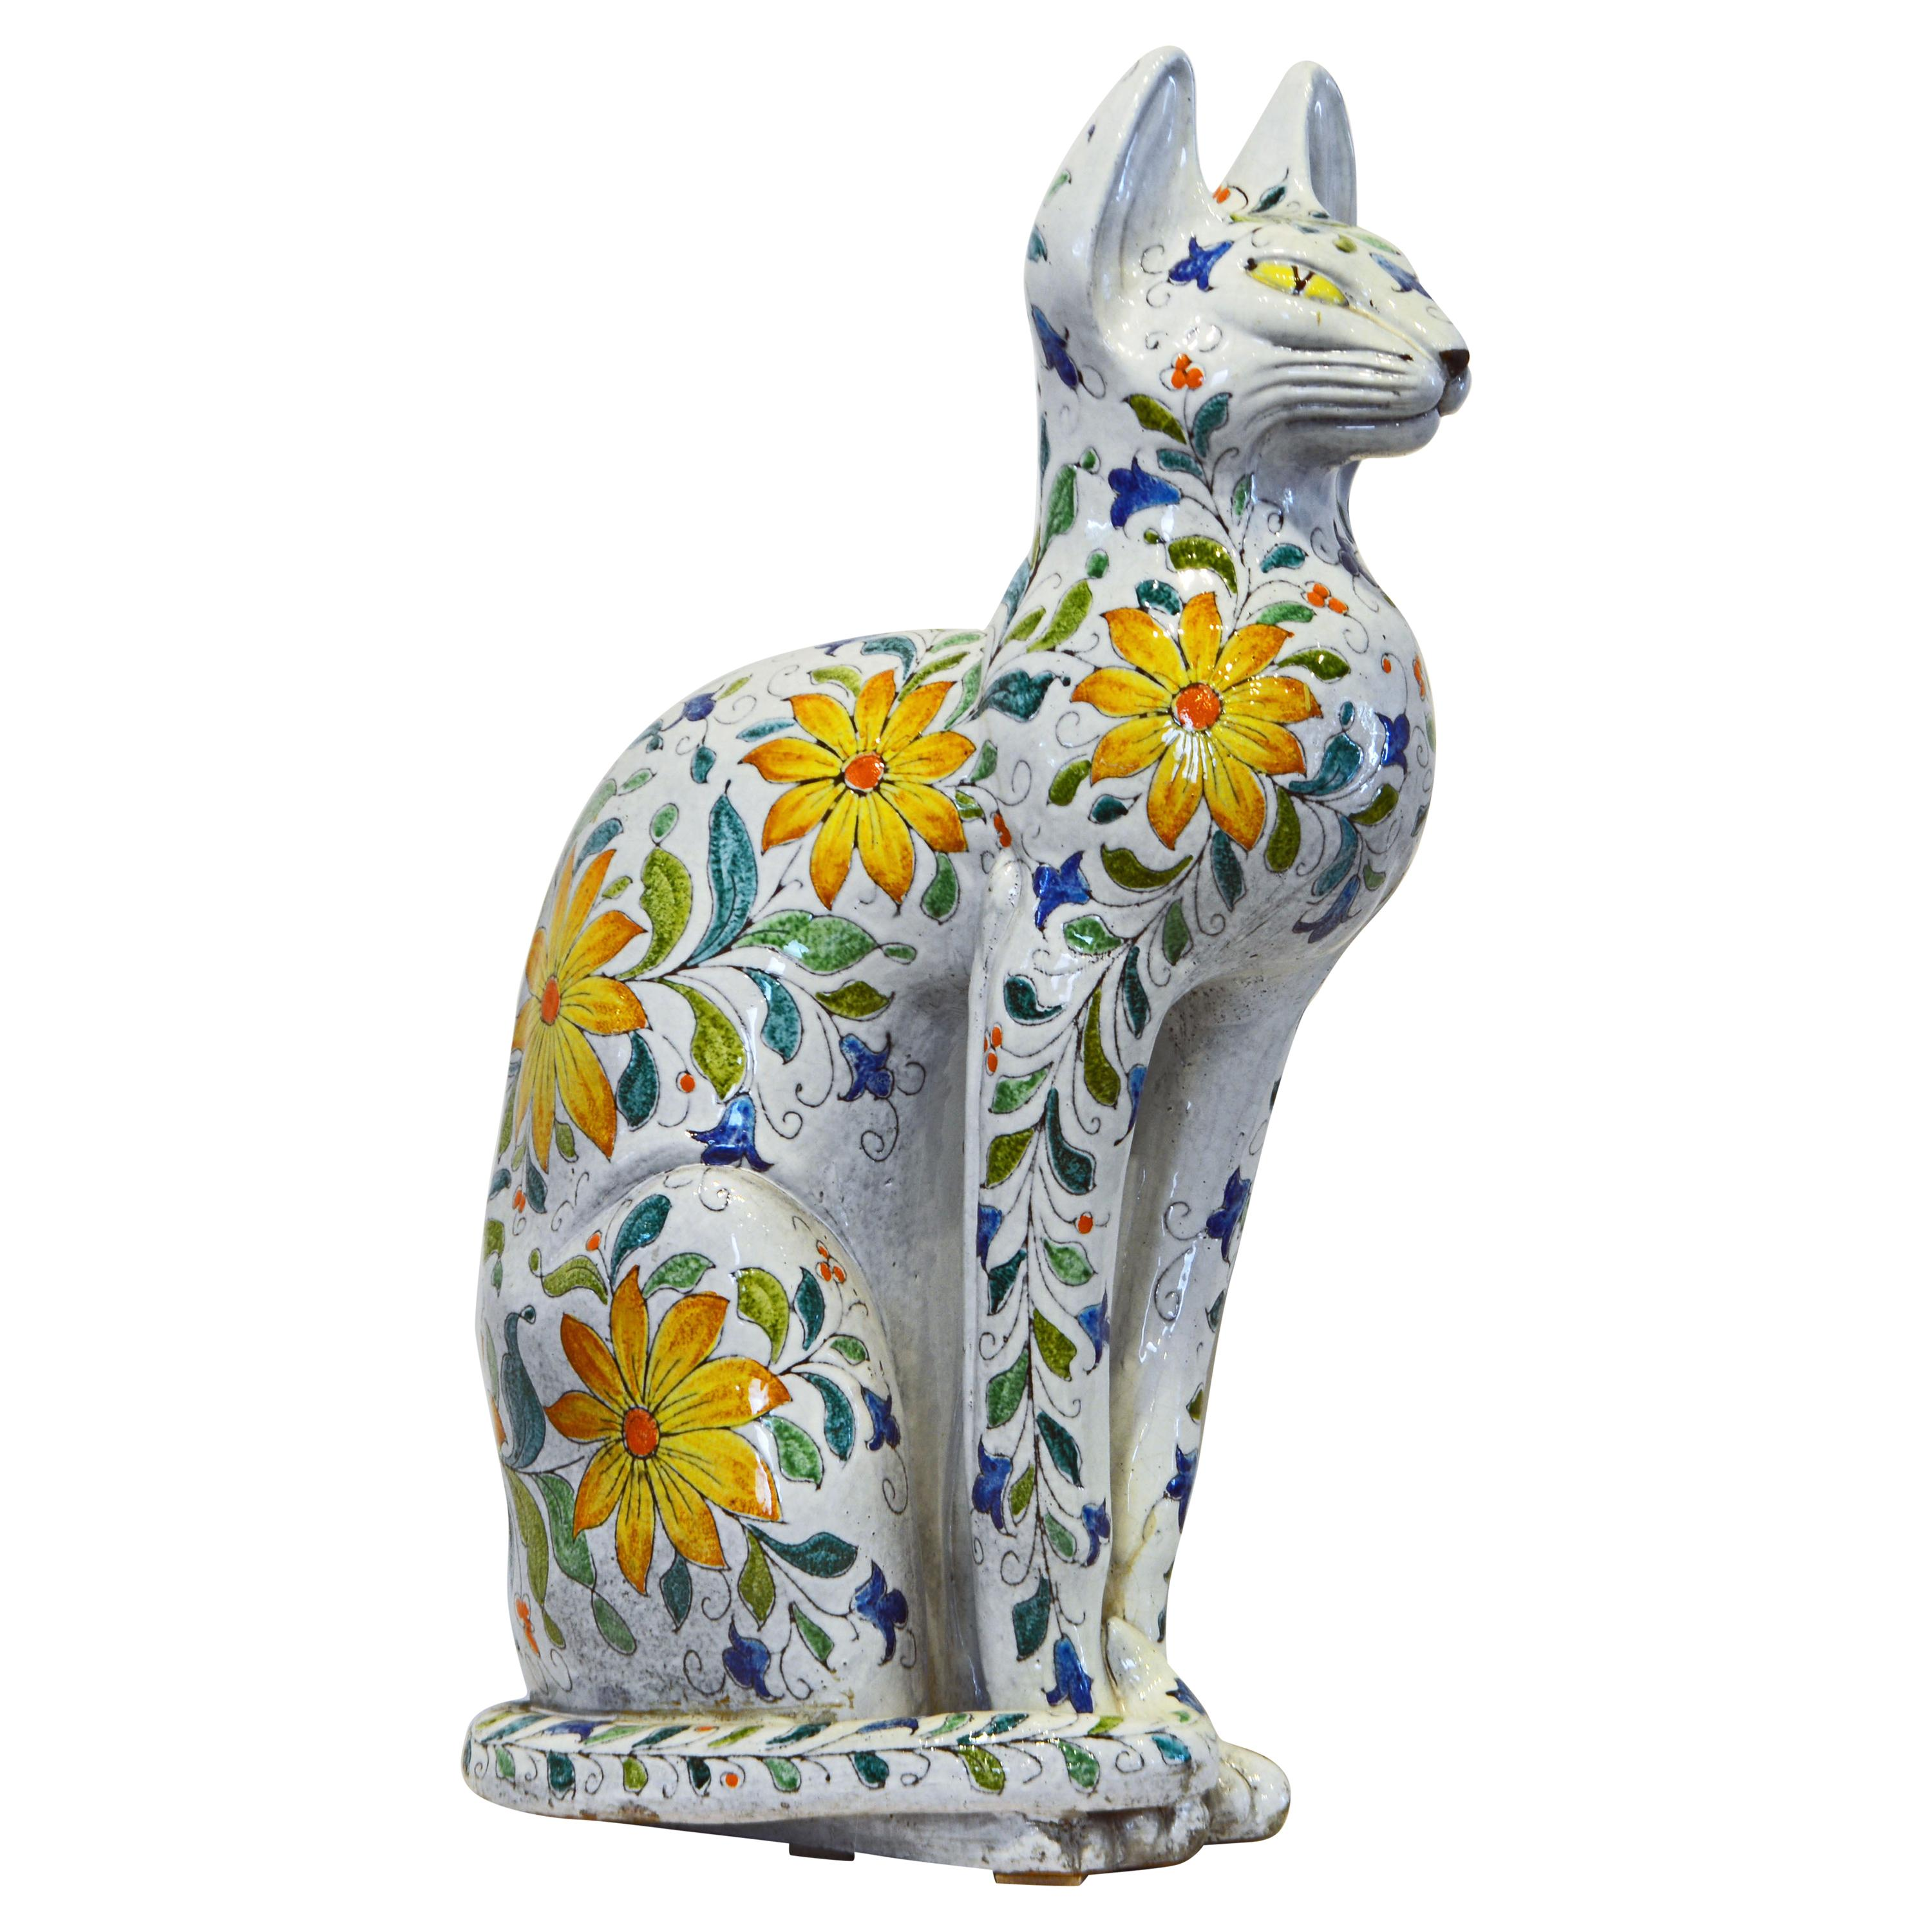 Egyptian Inspired Glazed Terracotta Cat with Floral Decoration, 20th Century